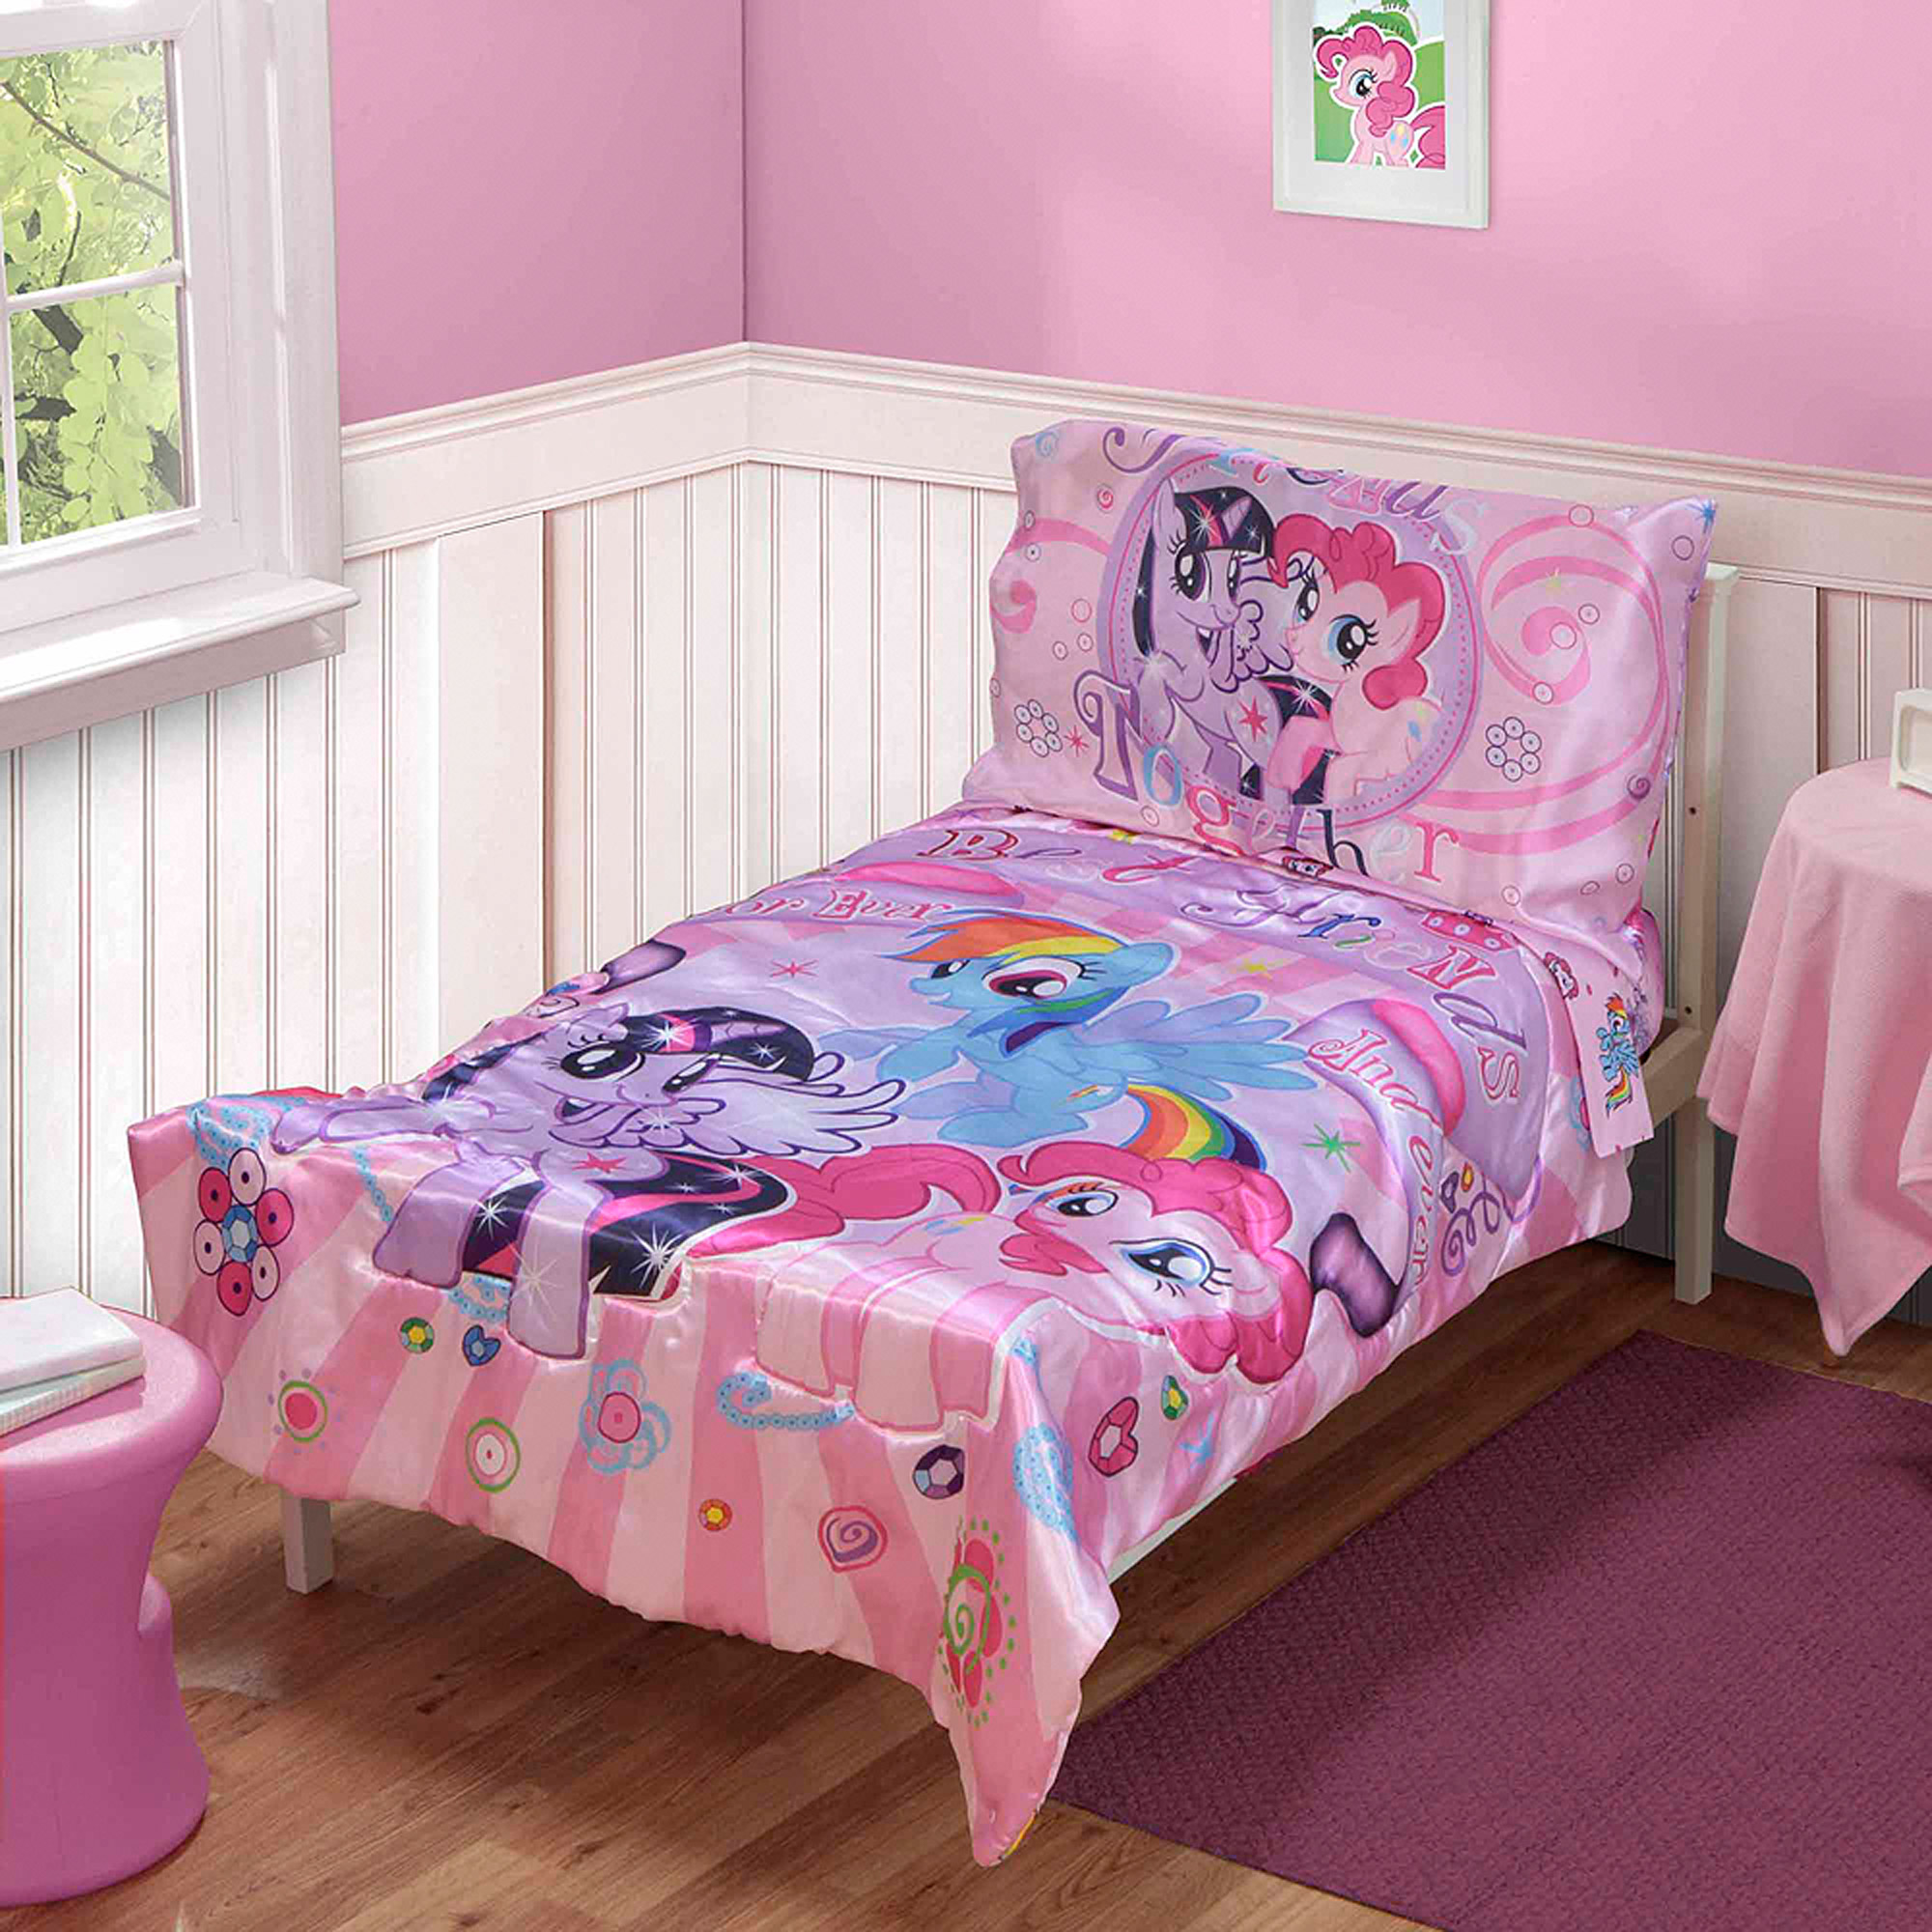 Interior My Little Pony Bedroom Ideas my little pony 4 pc toddler bedding set walmart com